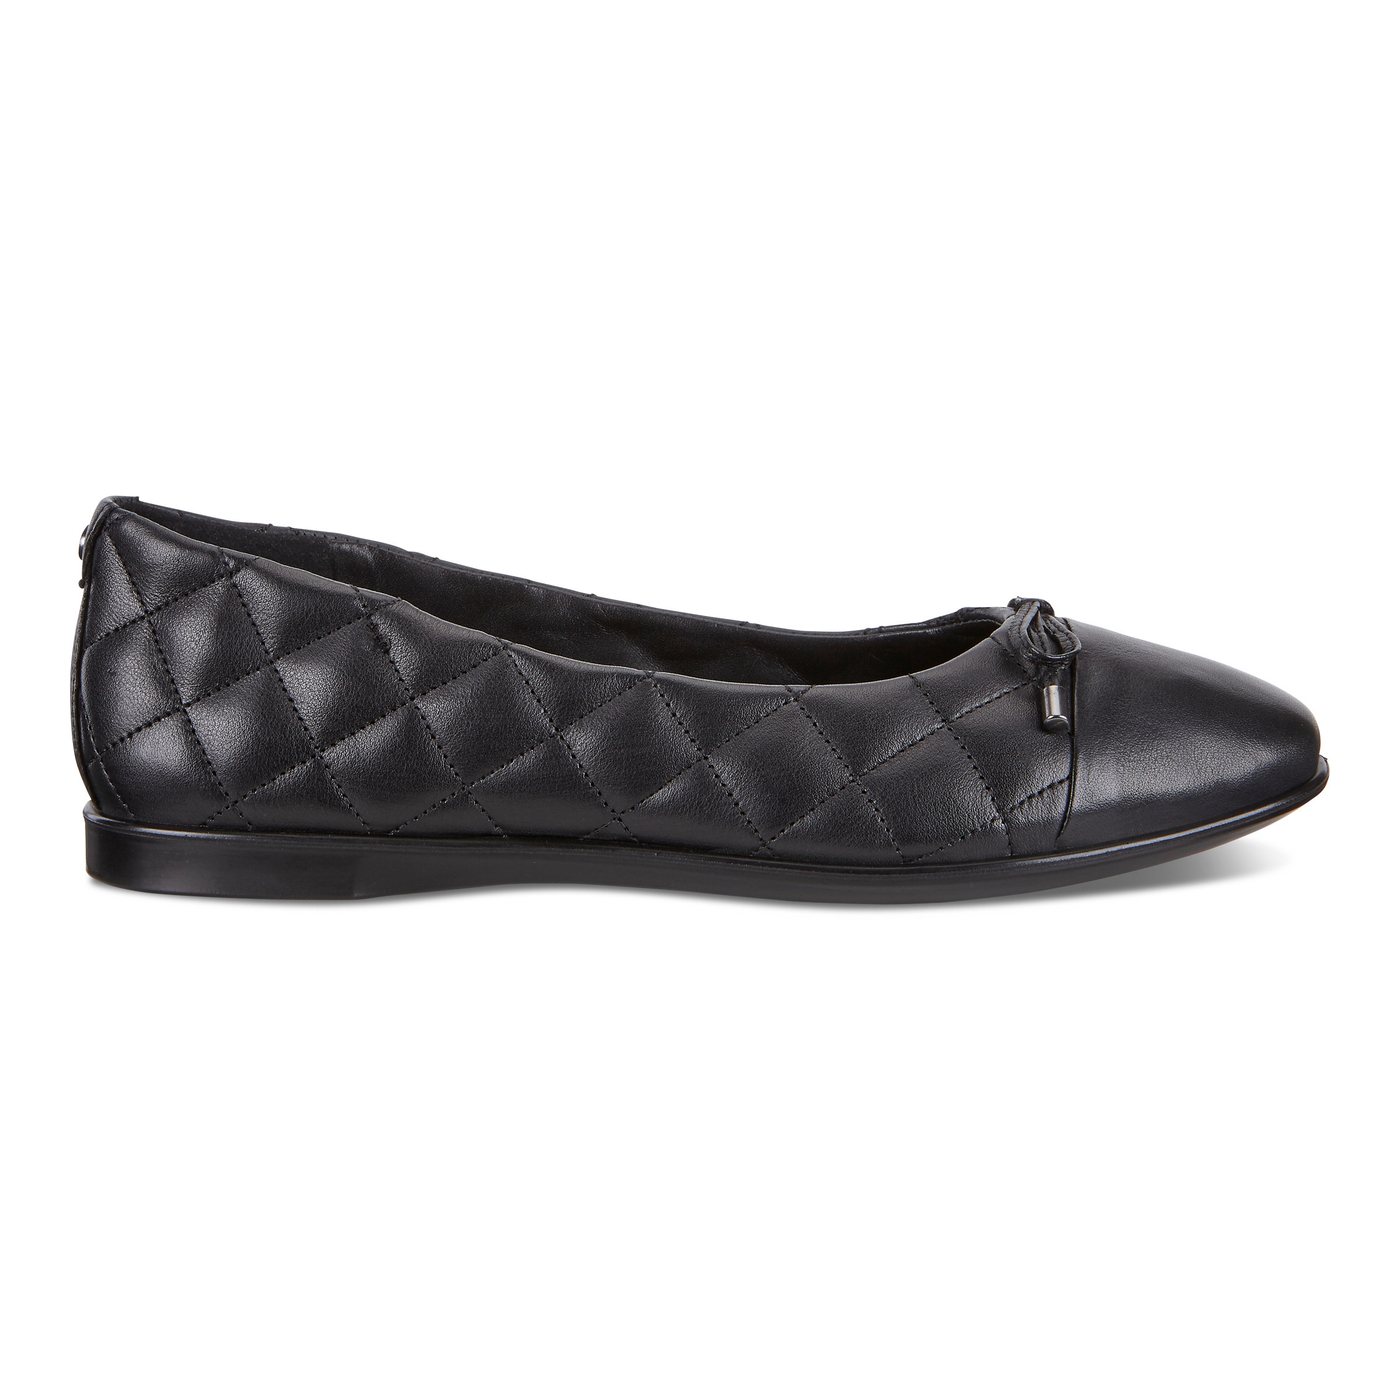 ECCO INCISE Qulited Slip On